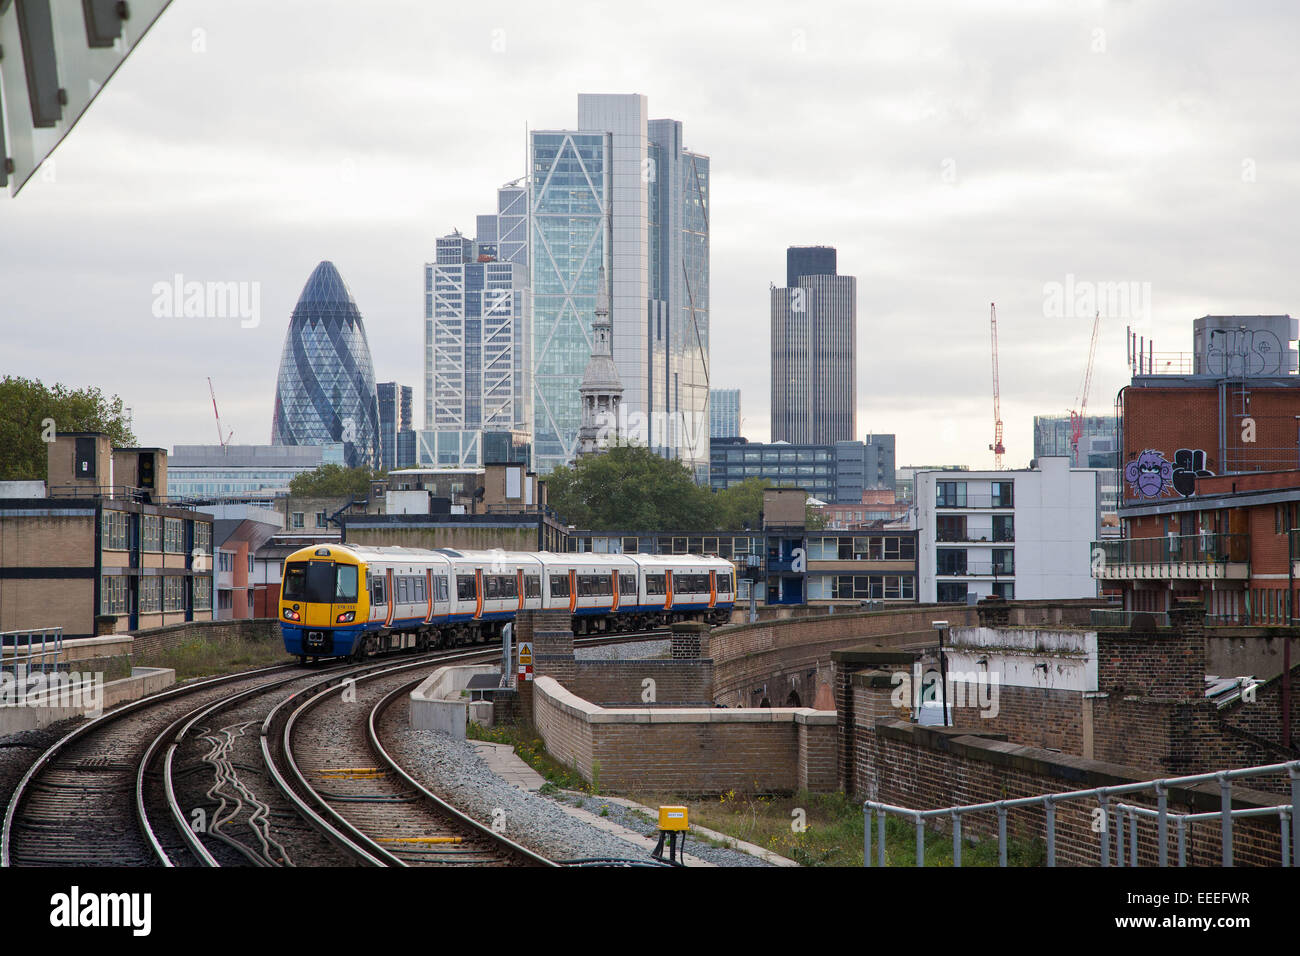 View of the London skyline with an Overground train - Stock Image